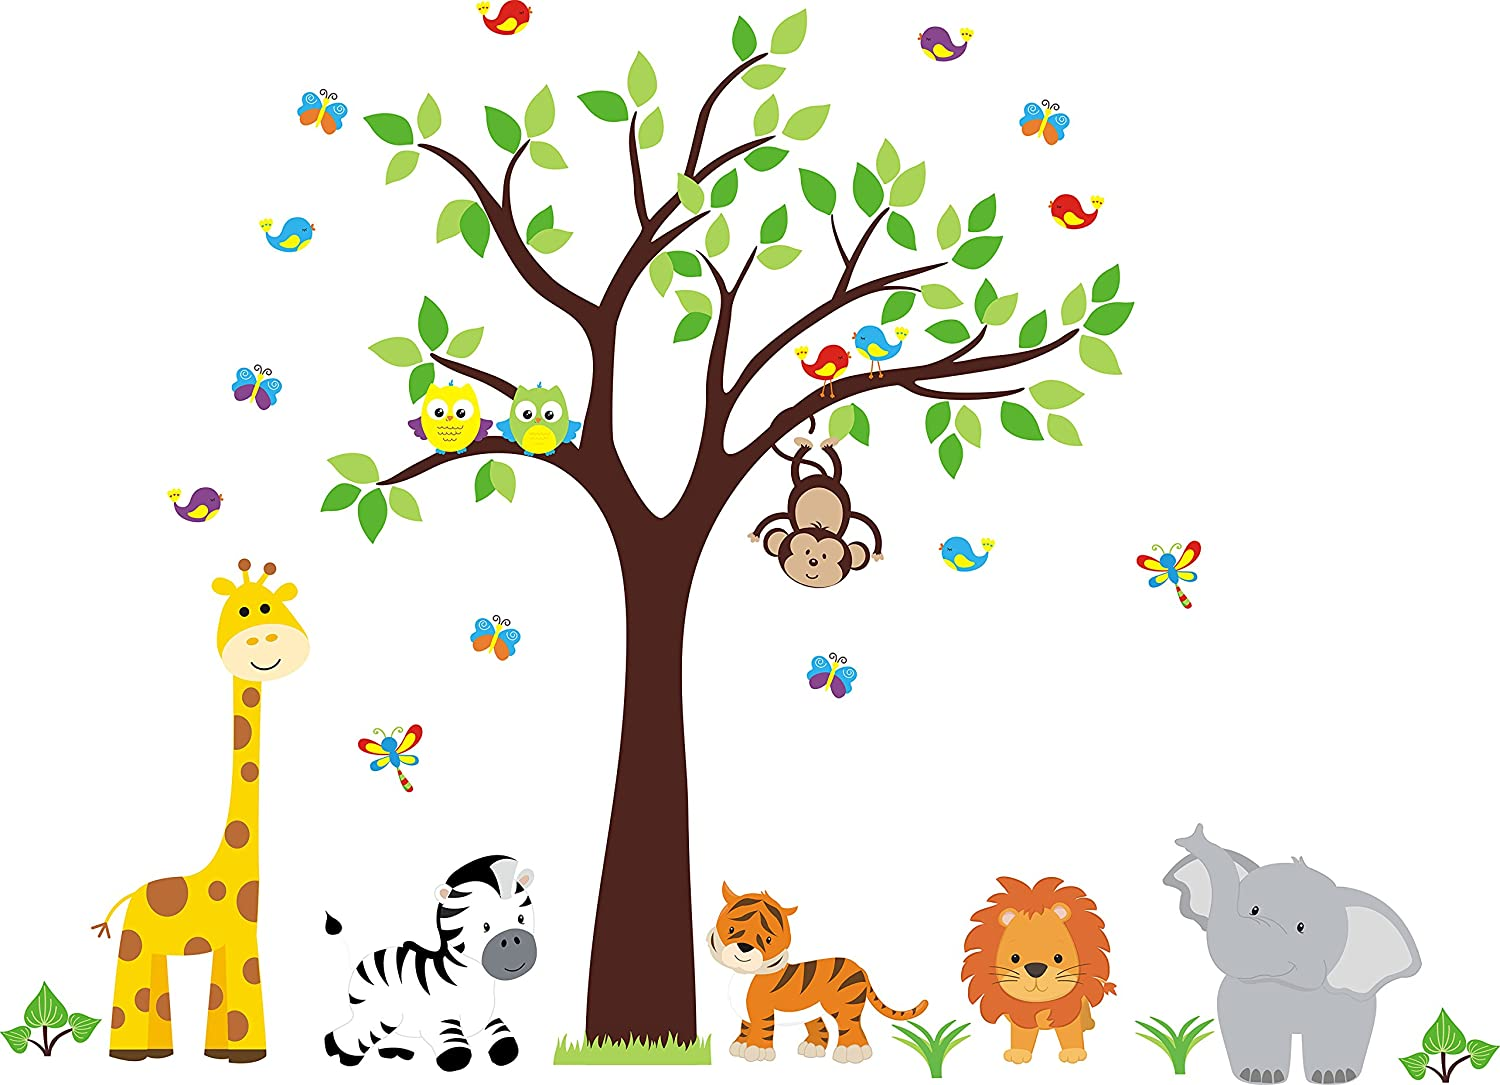 Nursery Wall Decal - 2021 new Kids OFFicial mail order Jungle Room